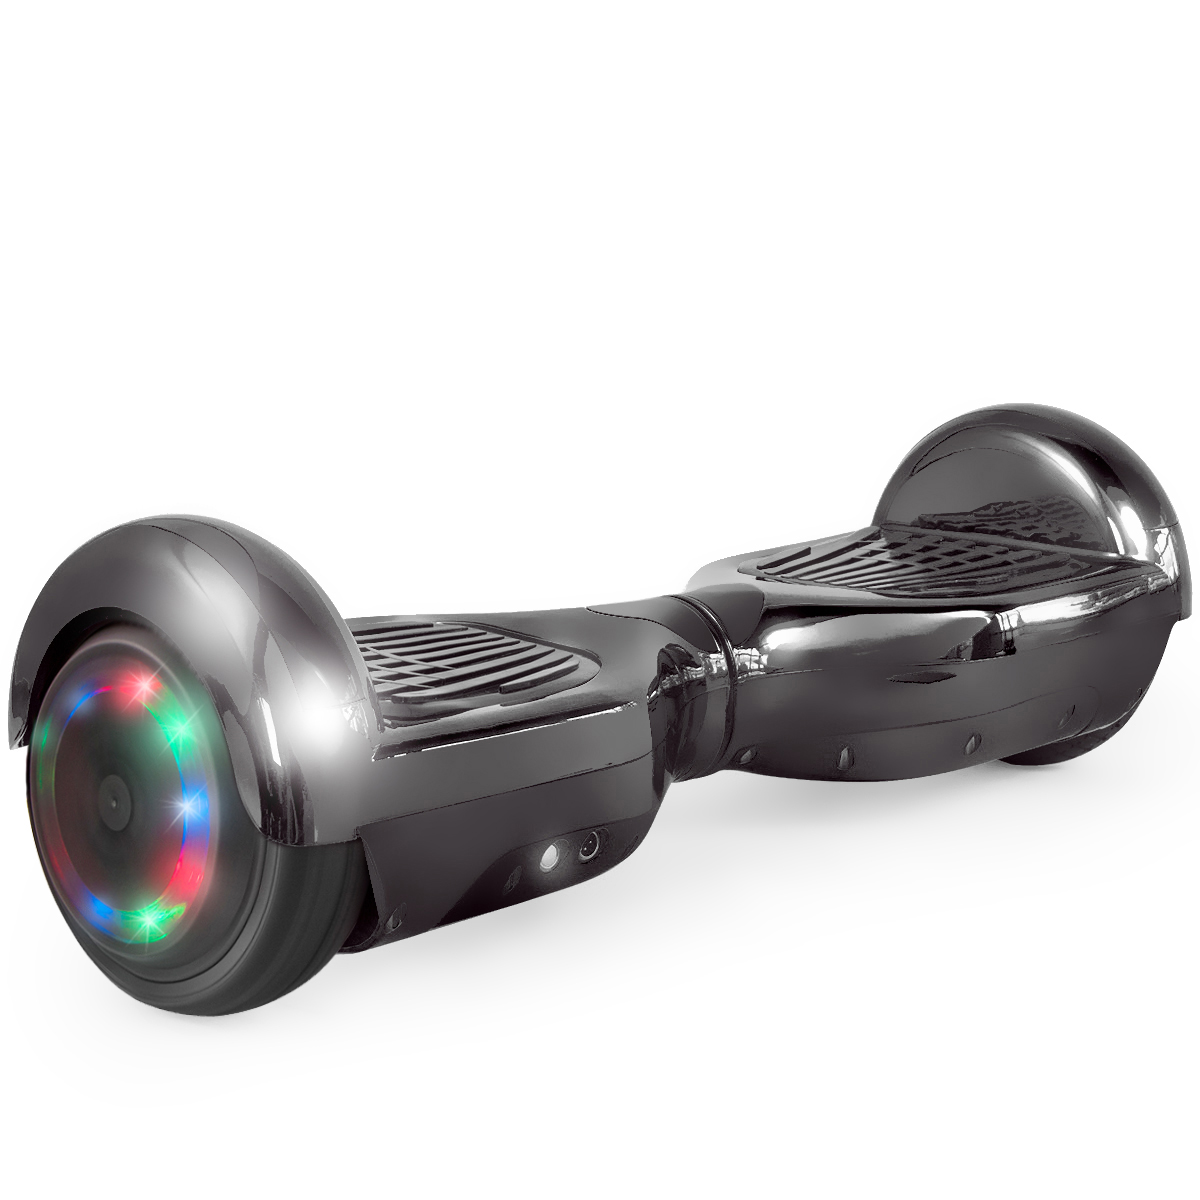 New Bluetooth Hoverboard UL2272 Certified Smart Self Balancing Electric Scooter with LED Lights- Chrome Black